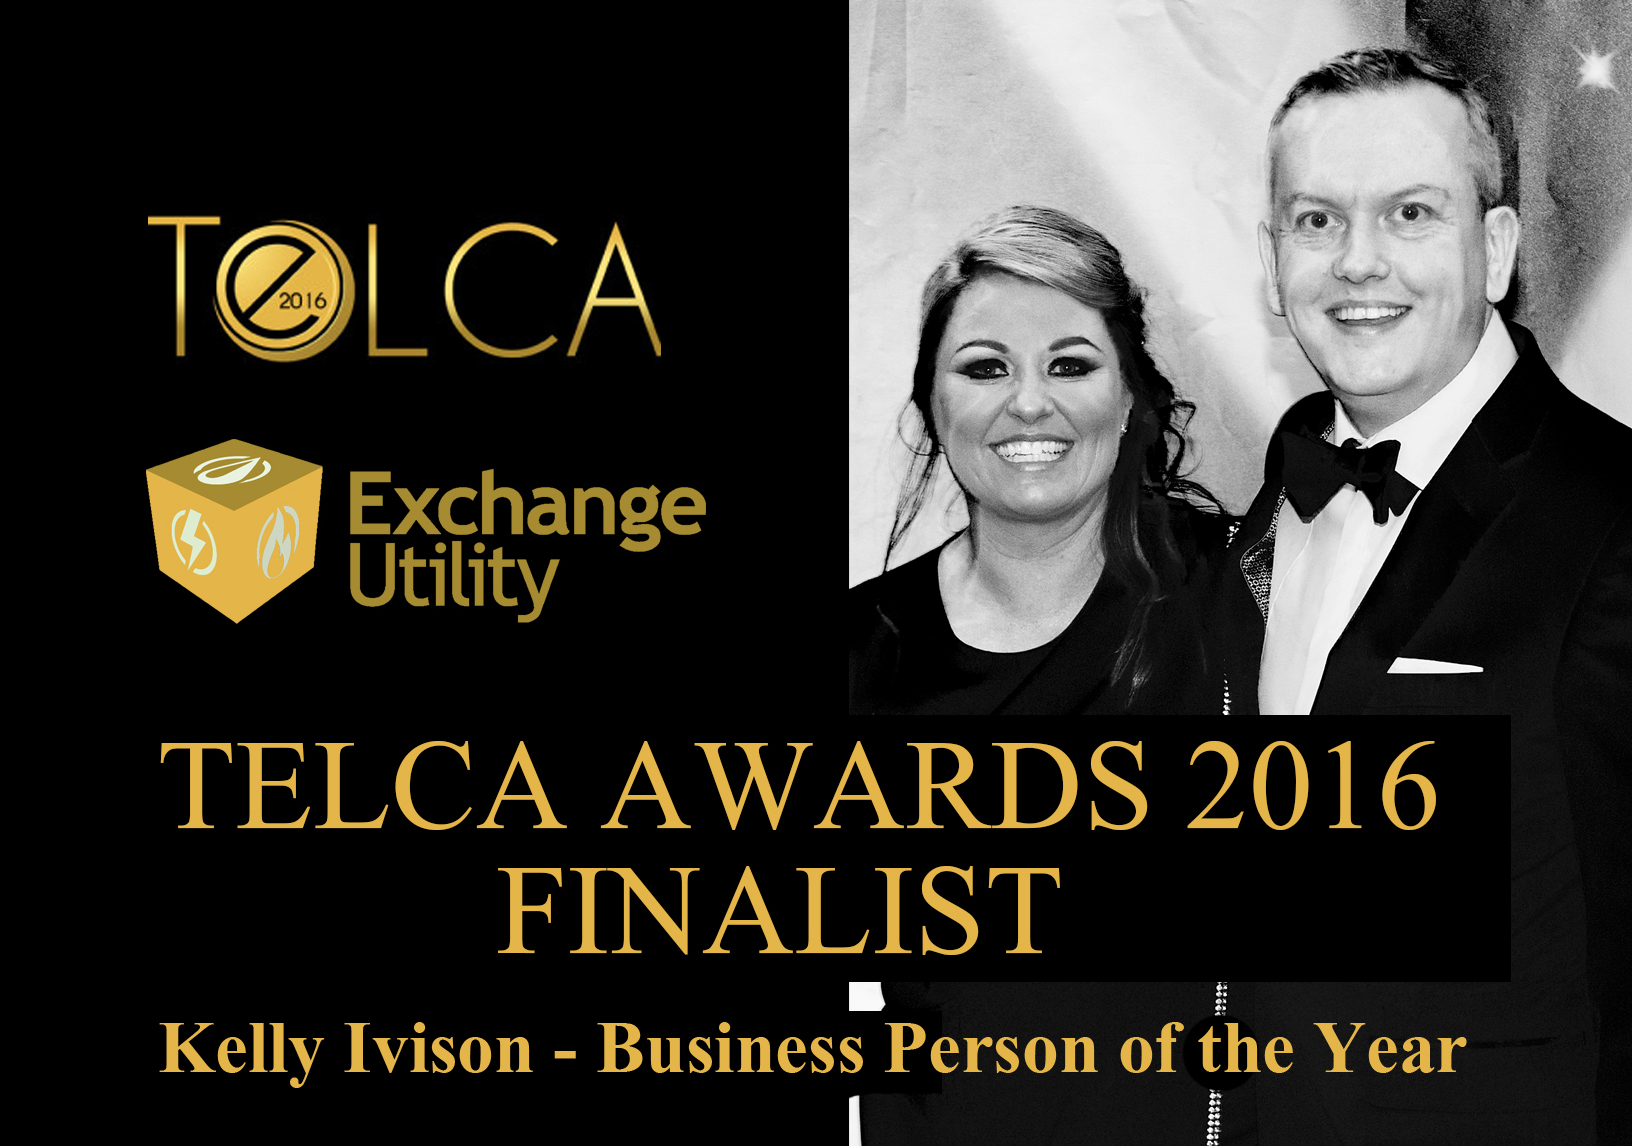 Business Person of the Year TELCA Finalist 2016 Kelly Ivison